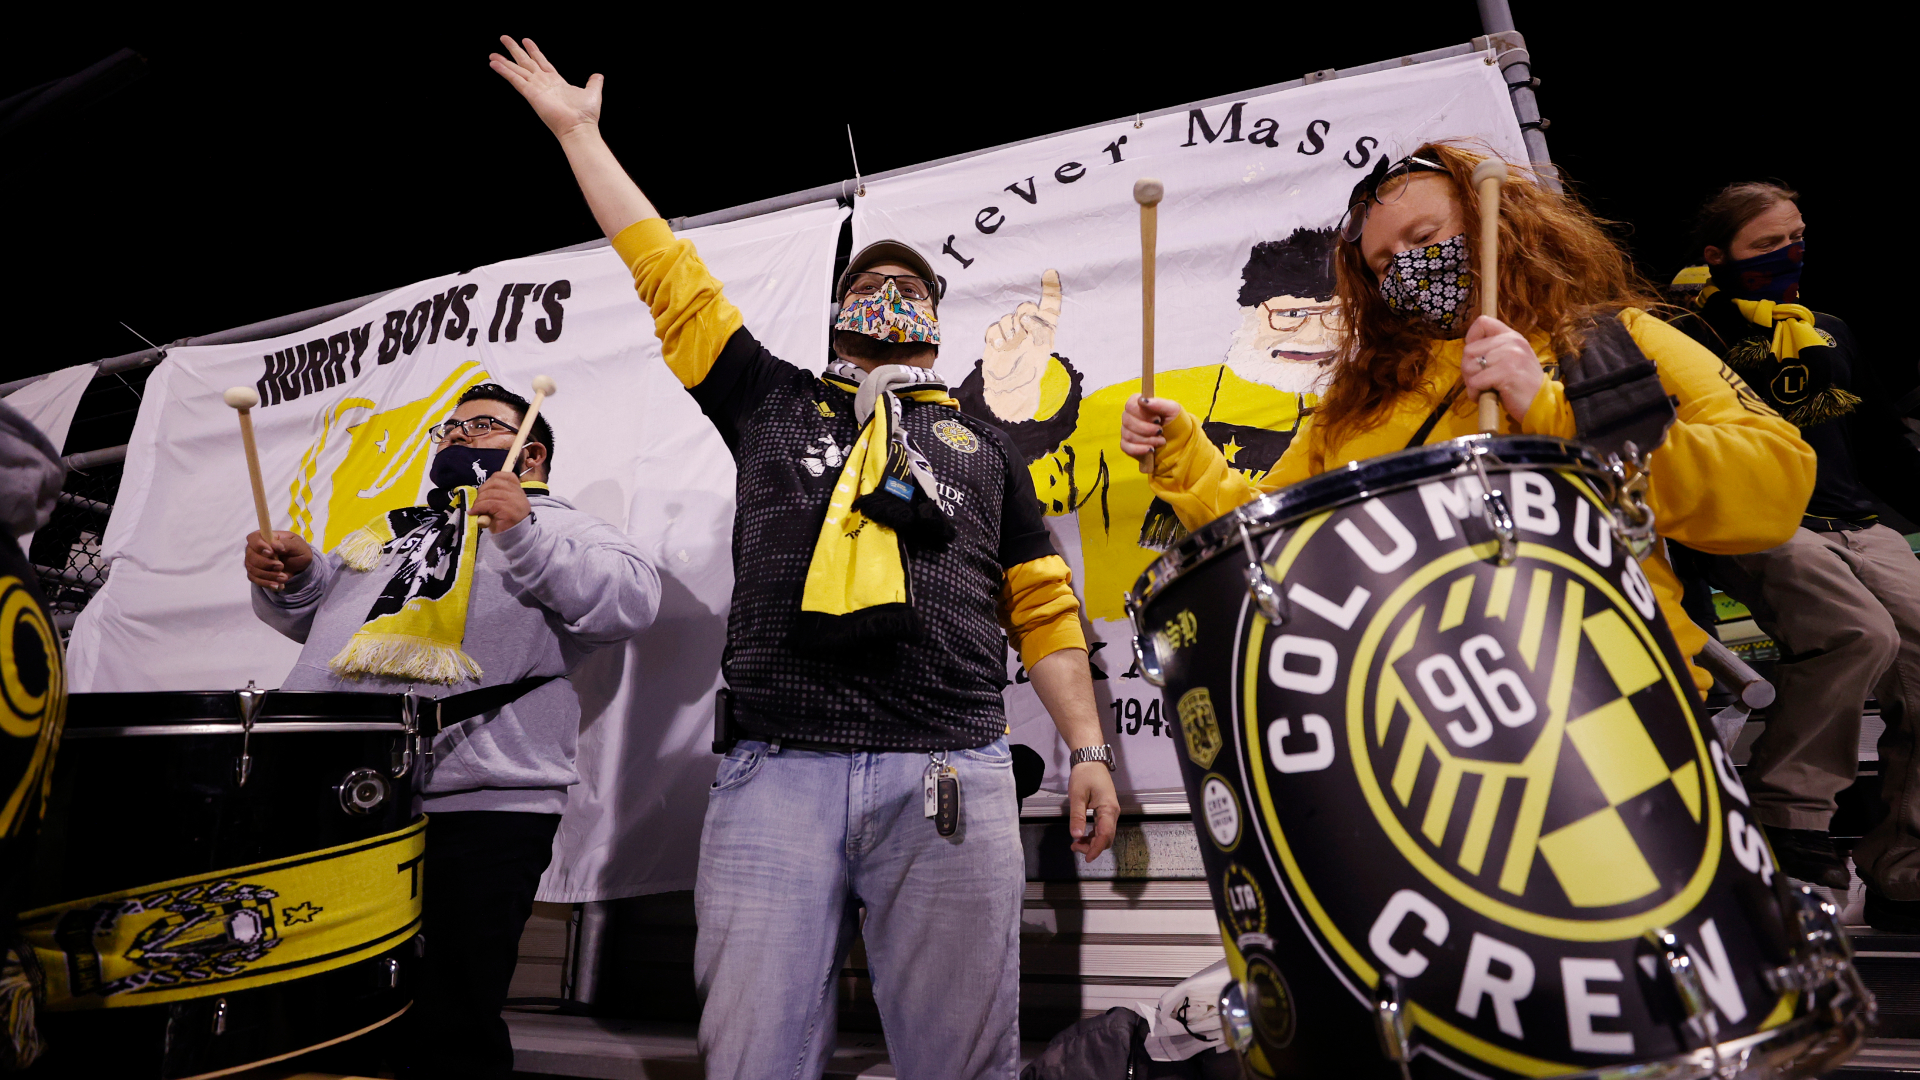 Columbus Crew blunders with fan base could serve as enduring lesson for big league owners